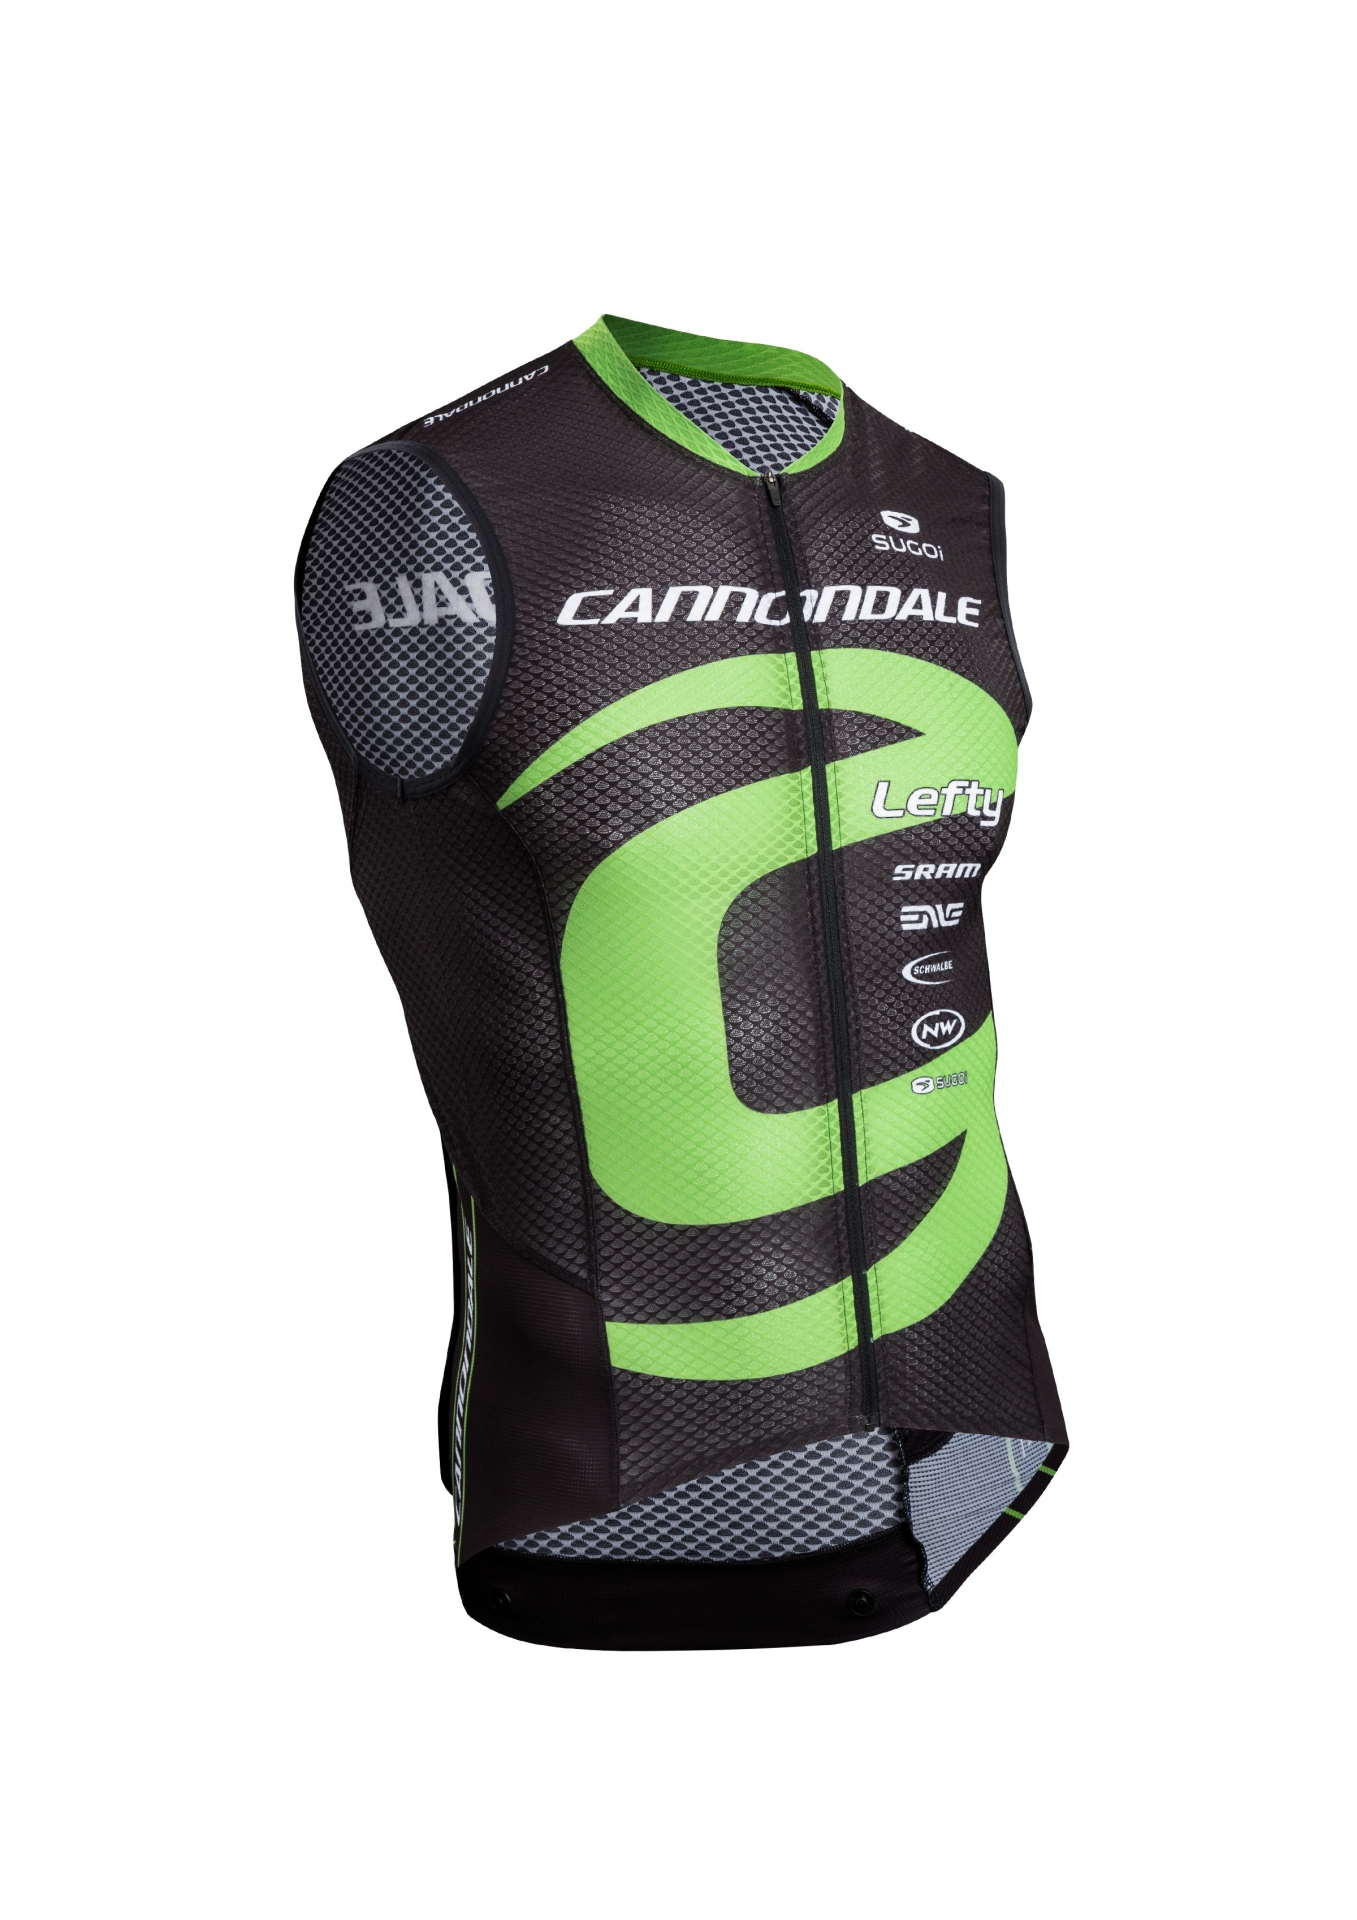 Maillot Cannondale Pro Vest Jersey Factory Racing CFR - M